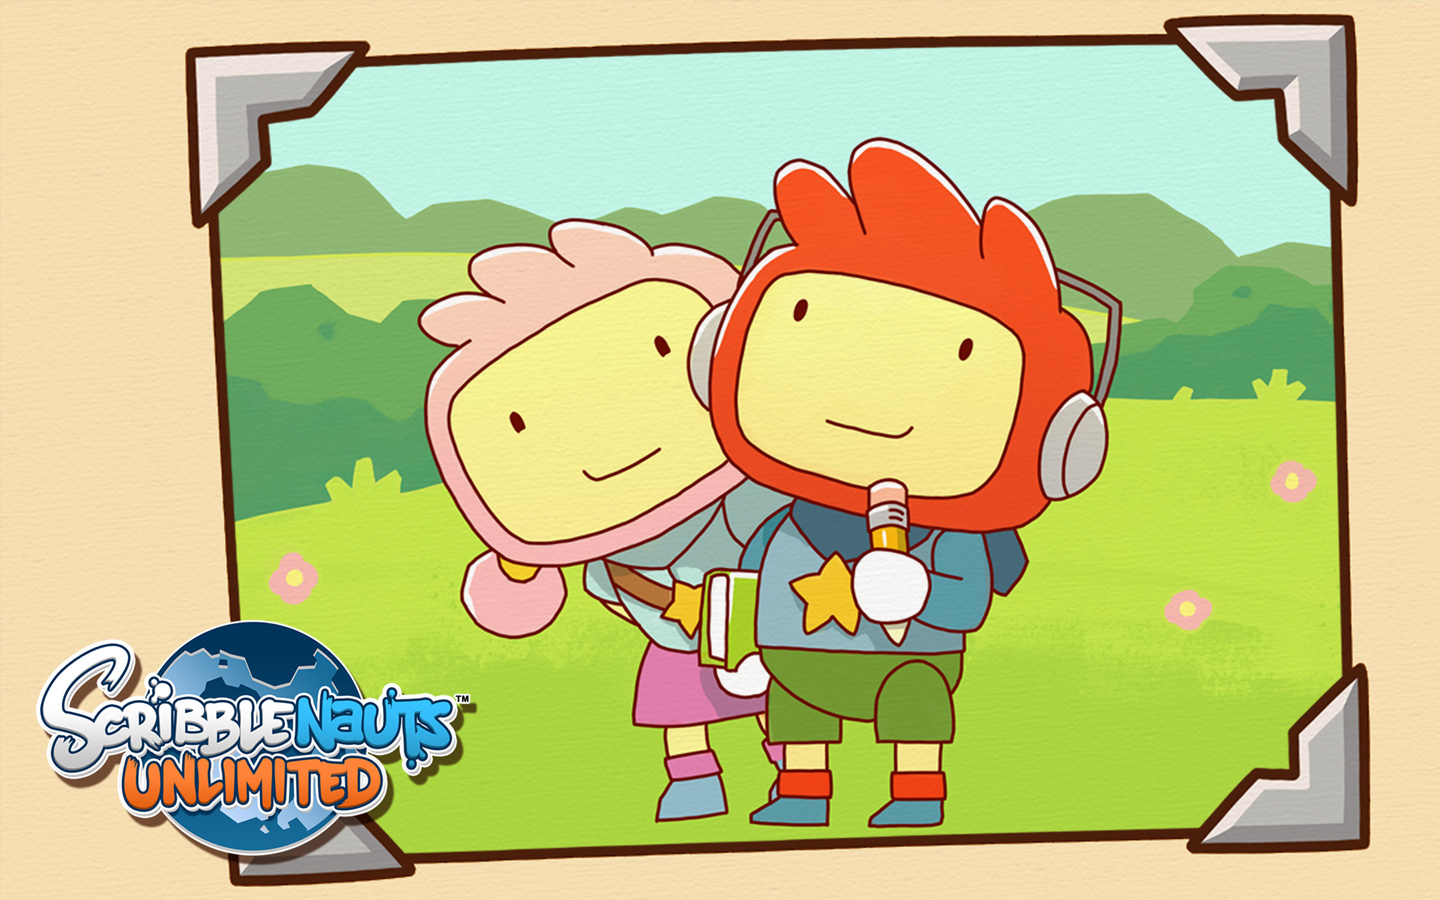 Free Scribblenauts Unlimited Wallpaper in 1440x900